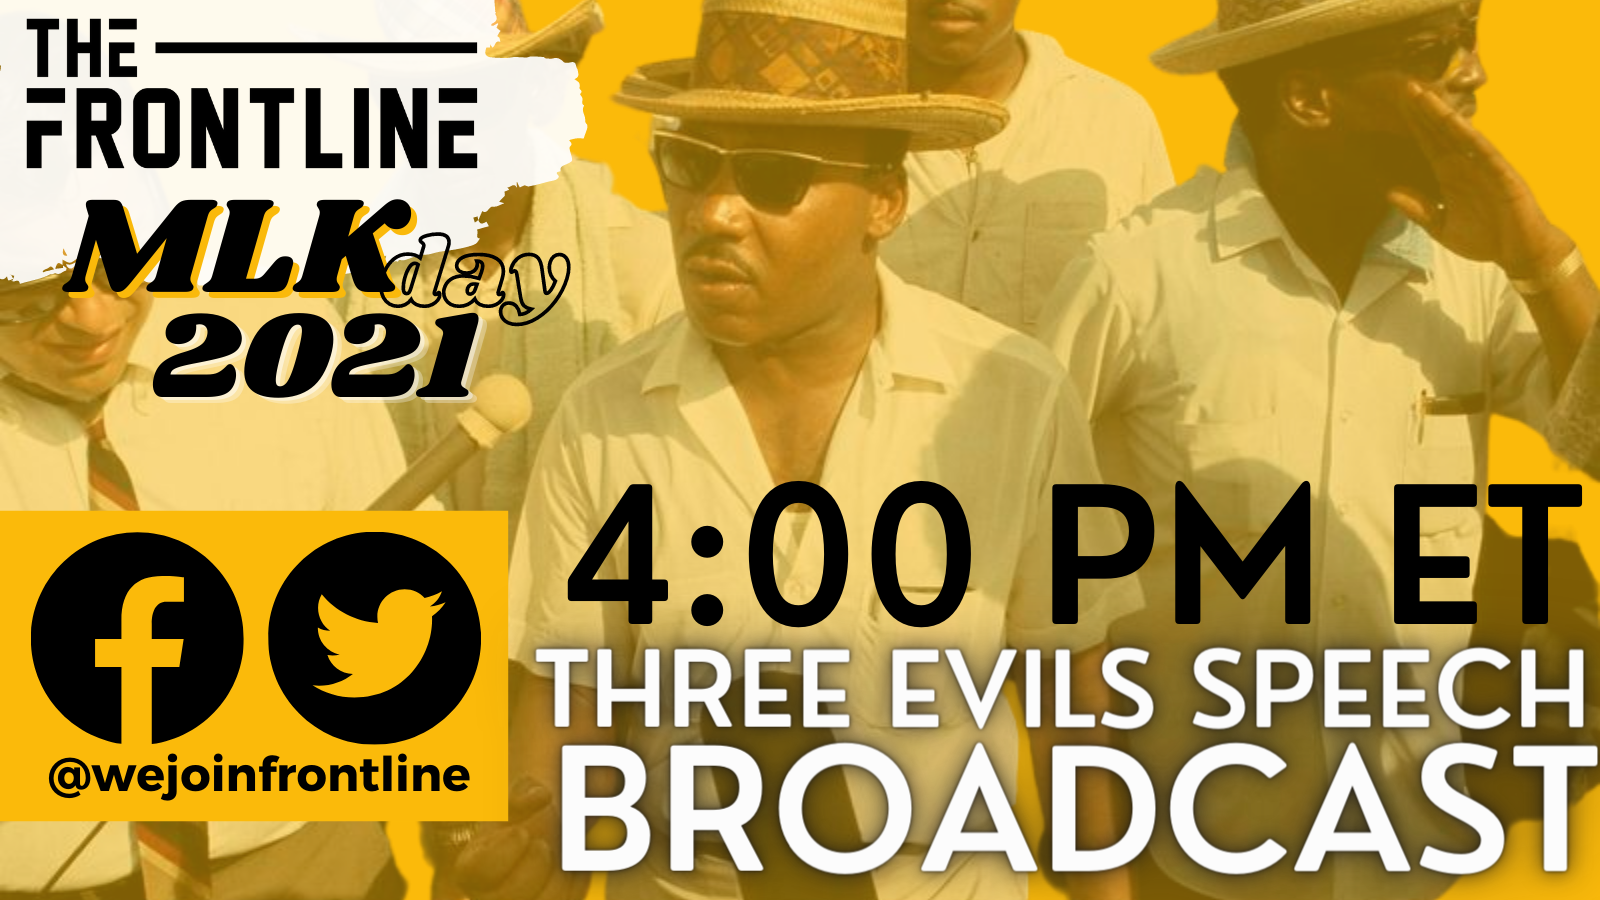 The Frontline MLK Day 2021 4:00 PM ET Three Evils Speech Broadcast. You see a picture of Martin Luther Kind Jr. Wearing a fedora in a while button down shirt surrounded by 3 other poeple who are in and out of the frame. All of this text and the picture are on a yellow backround.